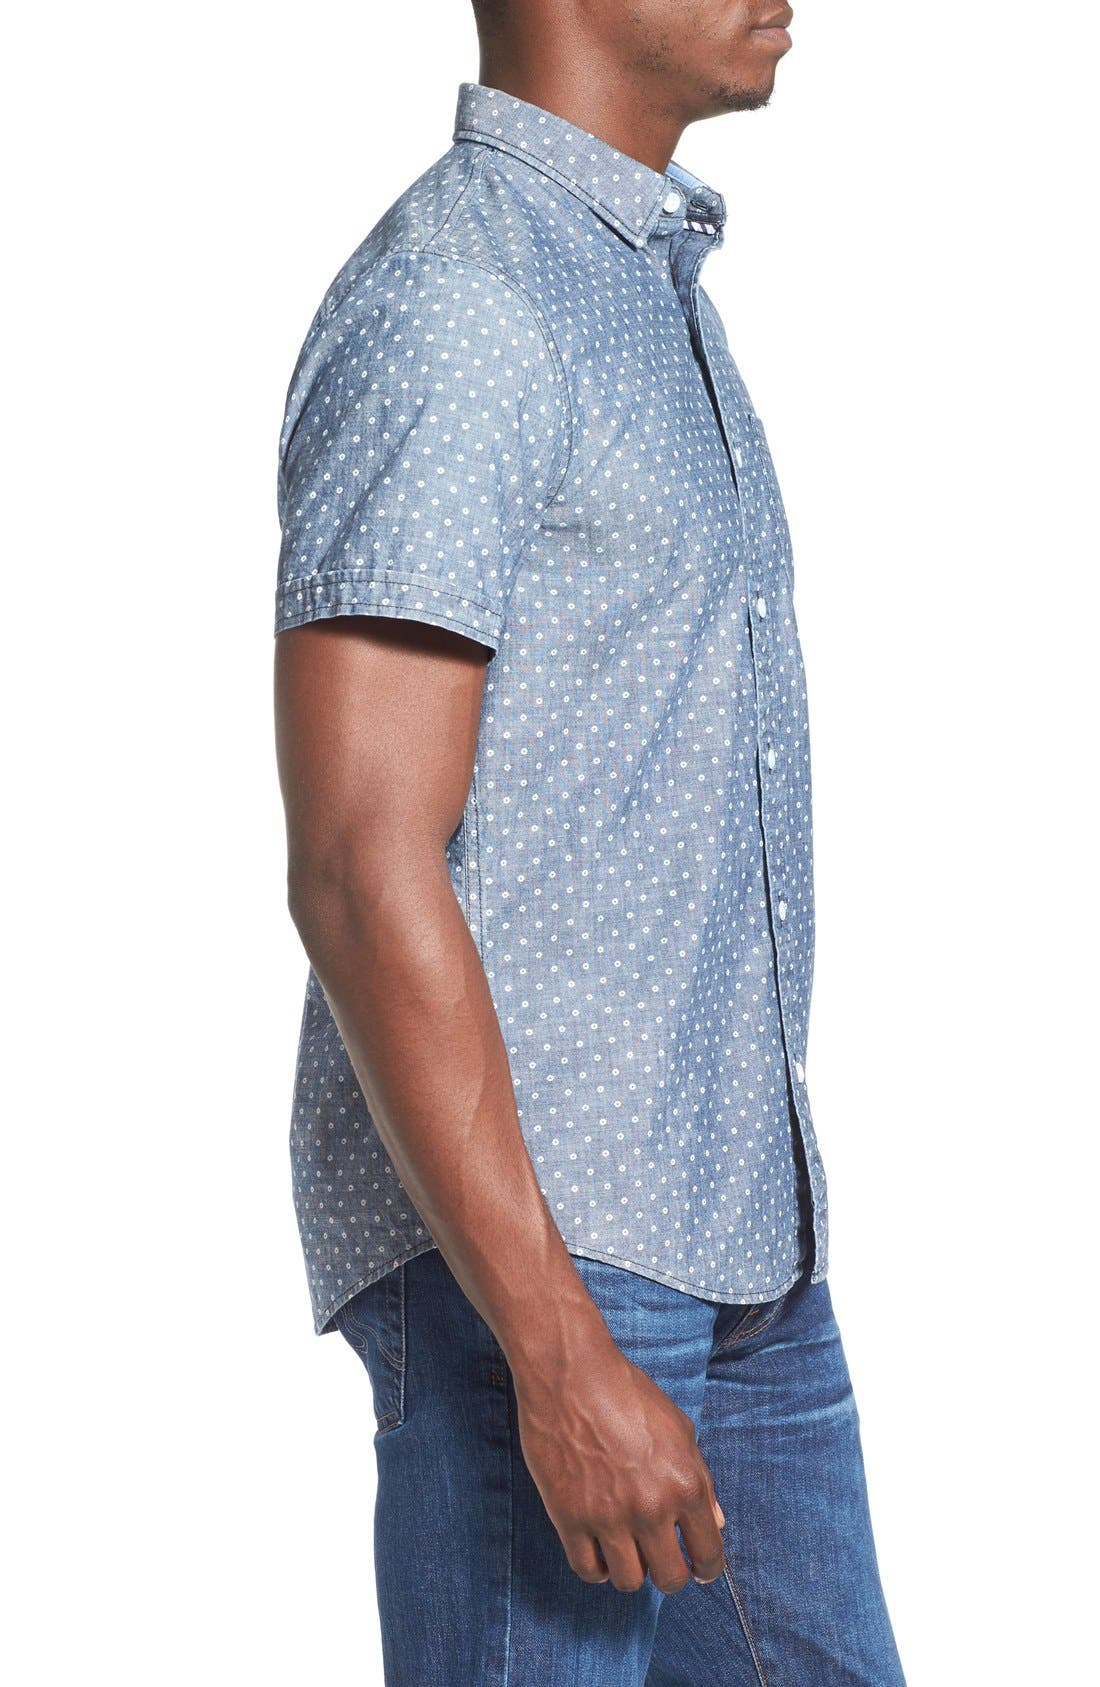 Alternate Image 3  - 1901 'Whitman' Trim Fit Short Sleeve Dot Print Chambray Shirt